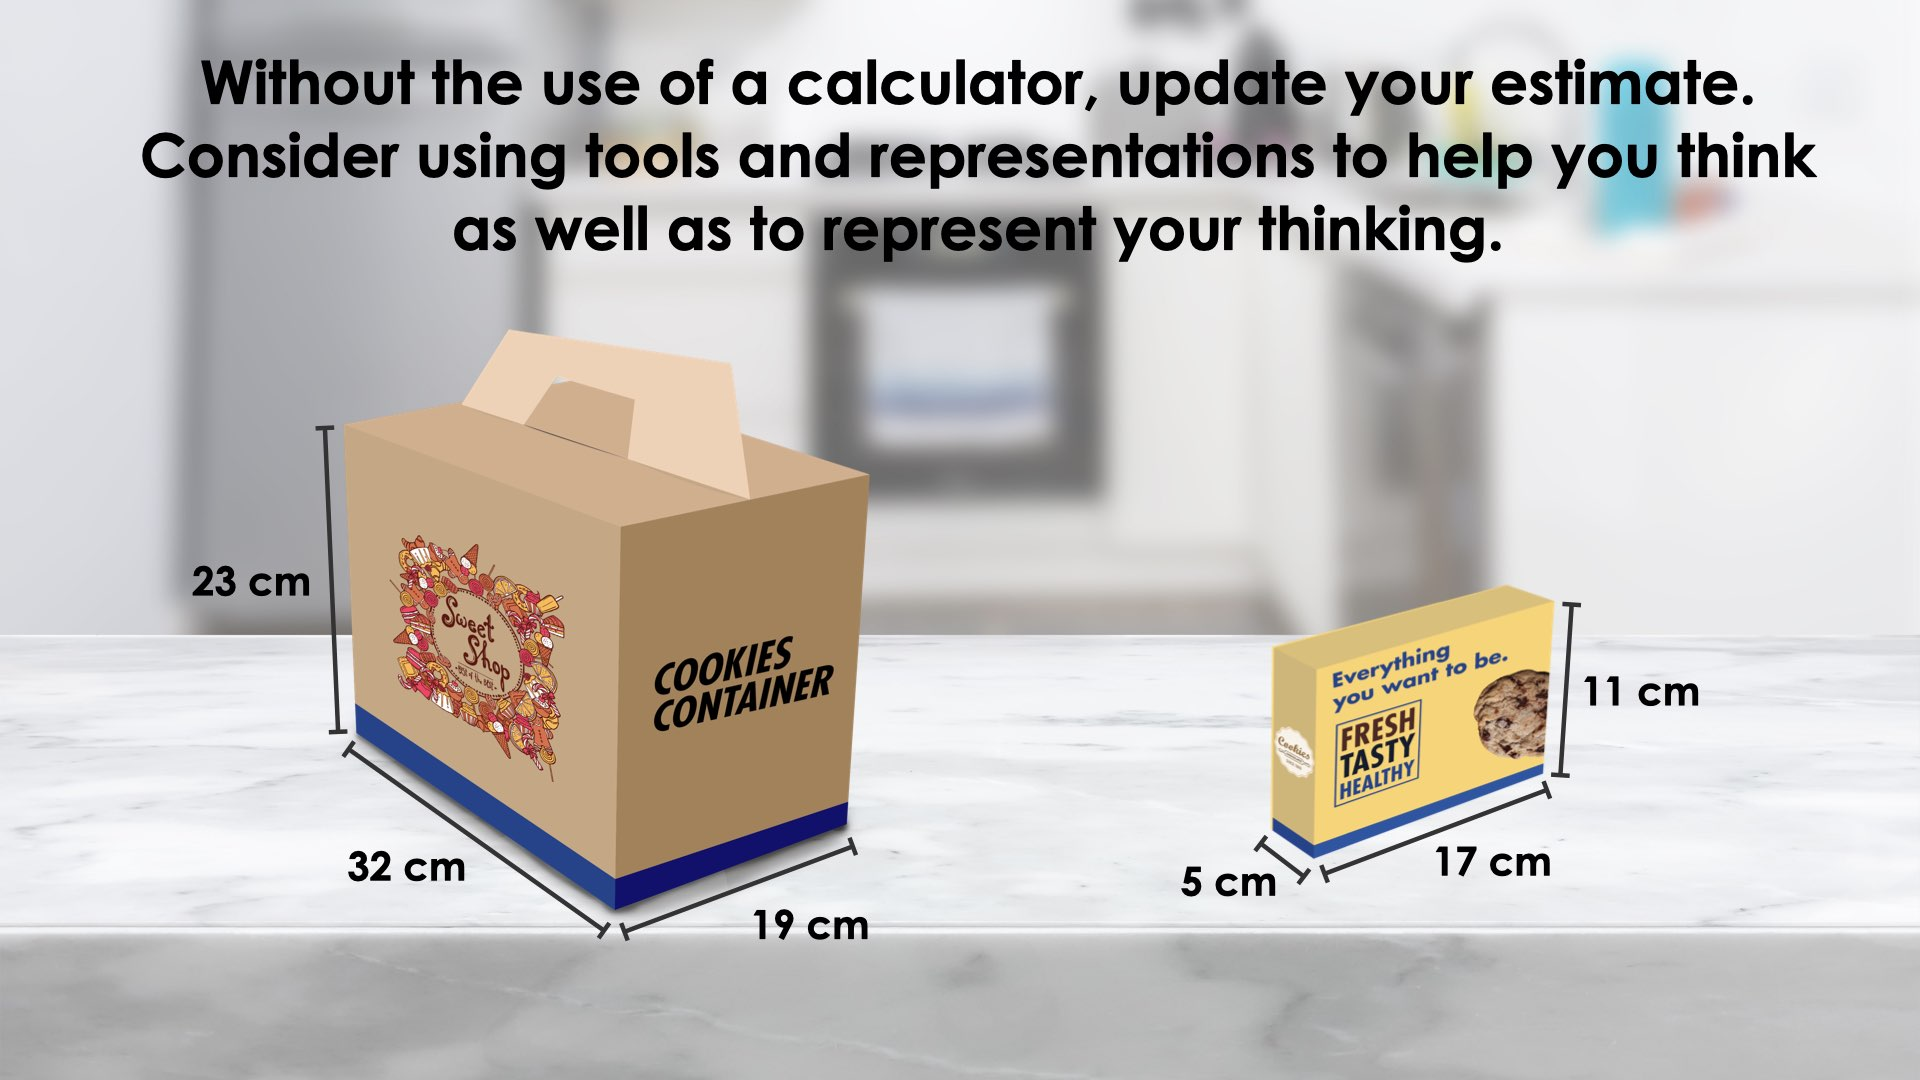 Girl Guide Cookies [Day 3] - How Many Boxes - 04 - Sense Making - Prompt Image With Measurements